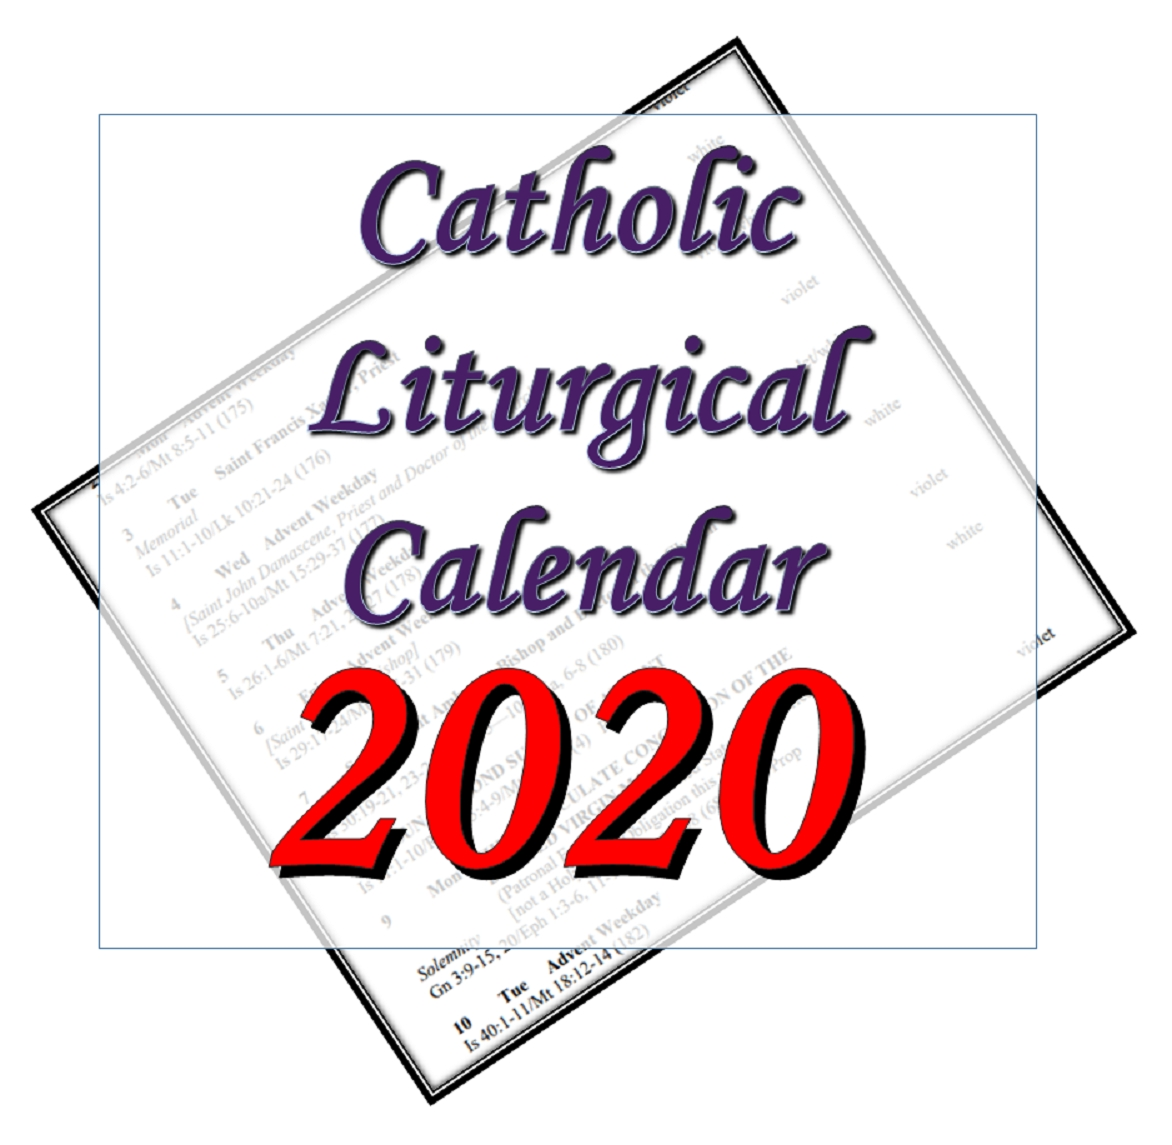 Liturgytools: Catholic Liturgical Calendars For 2020 inside Looking For A Catholic Liturgical Calendar For 2020